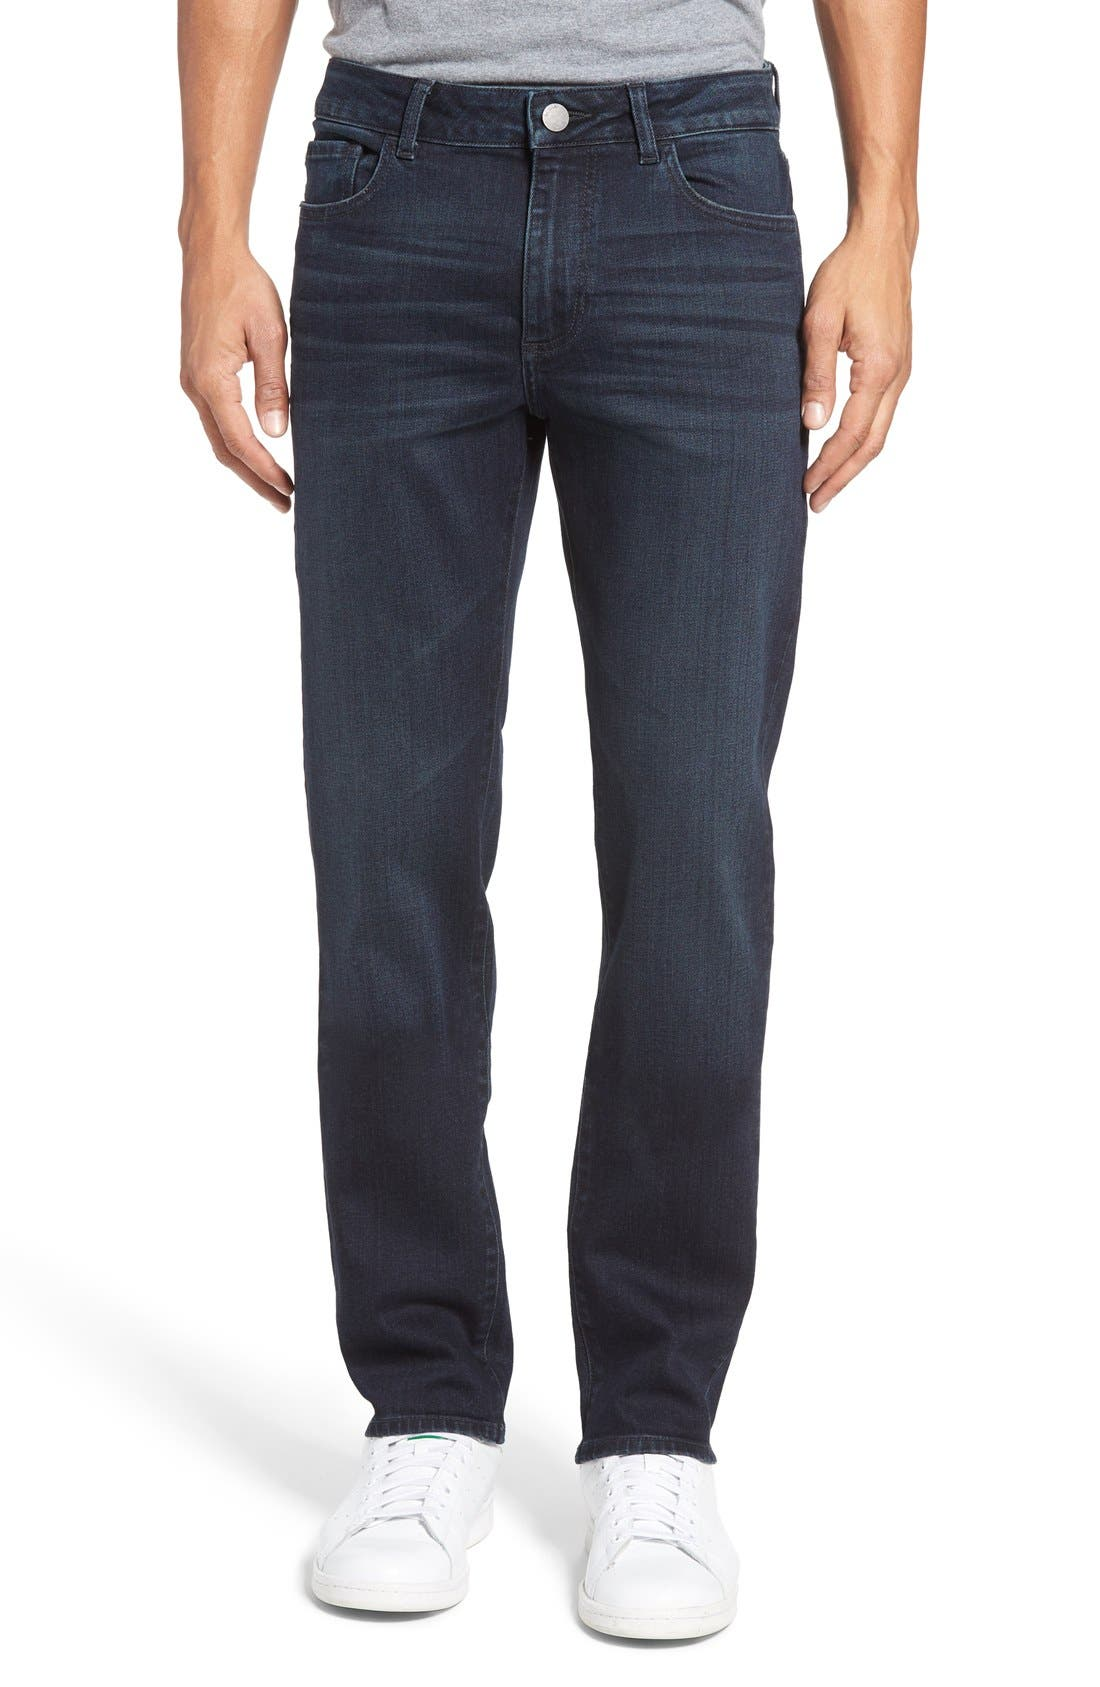 DL1961 Nick Slim Fit Jeans (Anvil)